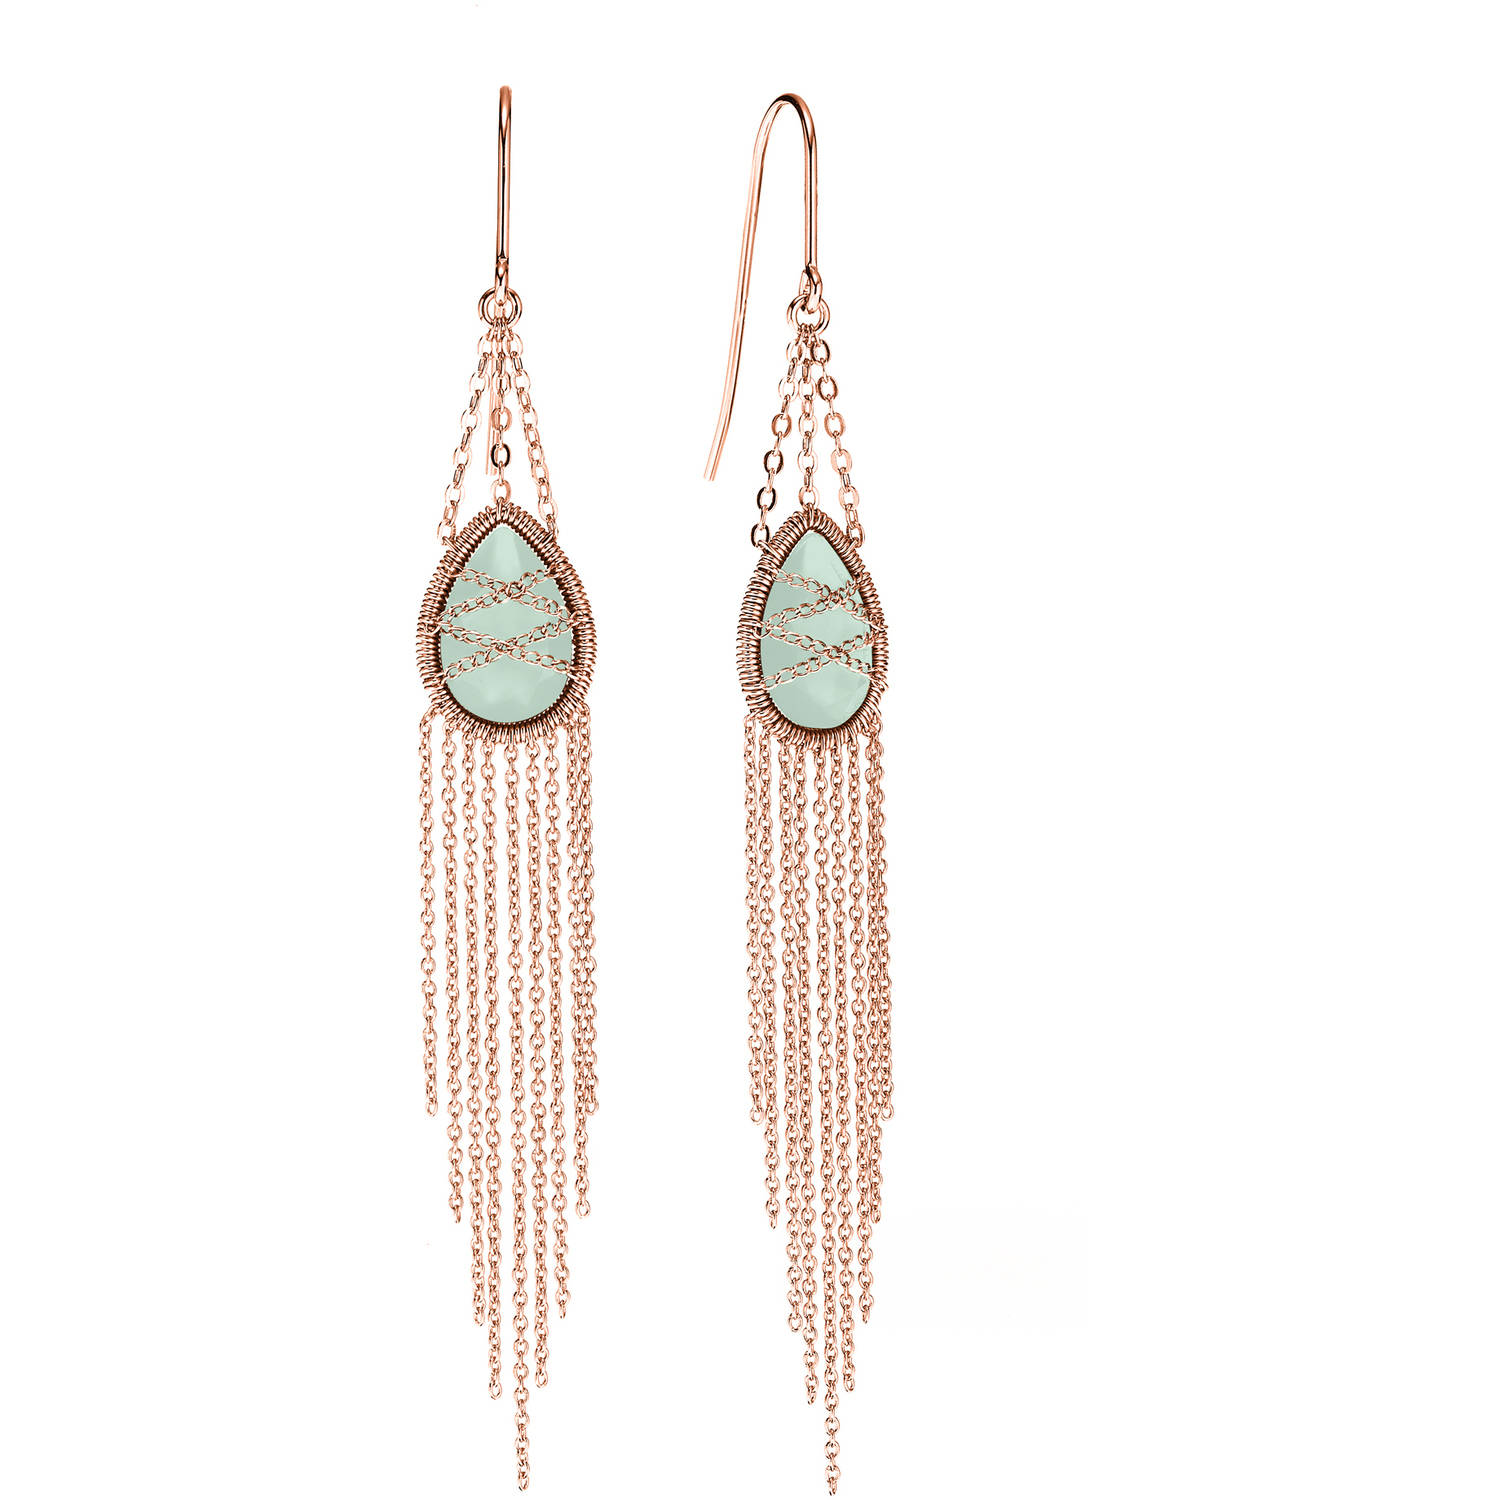 5th & Main Rose Gold over Sterling Silver Hand-Wrapped Drape Chain Hanging Teardrop Chalcedony Stone Earrings by Generic